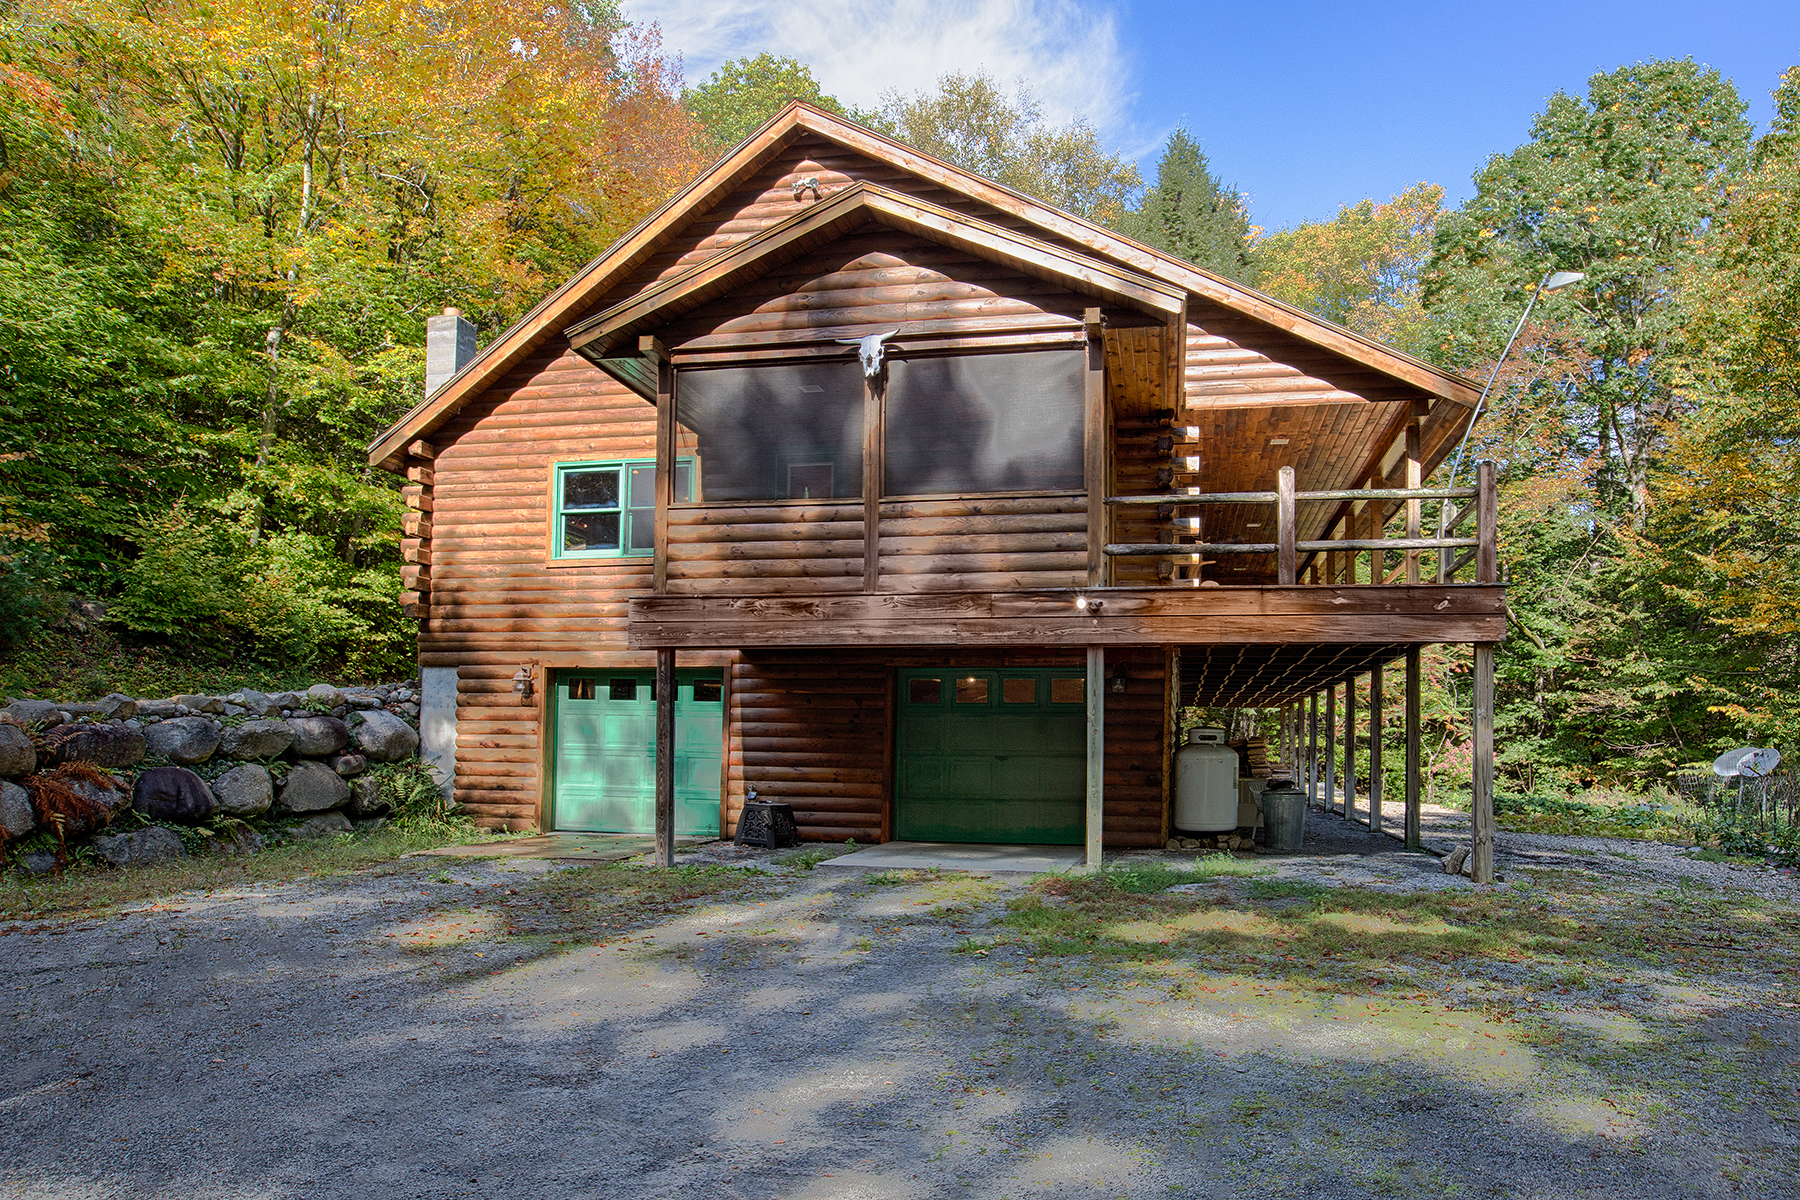 Casa Unifamiliar por un Venta en Secluded Luxury Log Home in The Adirondack Park 213 Dippikill Rd Warrensburg, Nueva York 12885 Estados Unidos